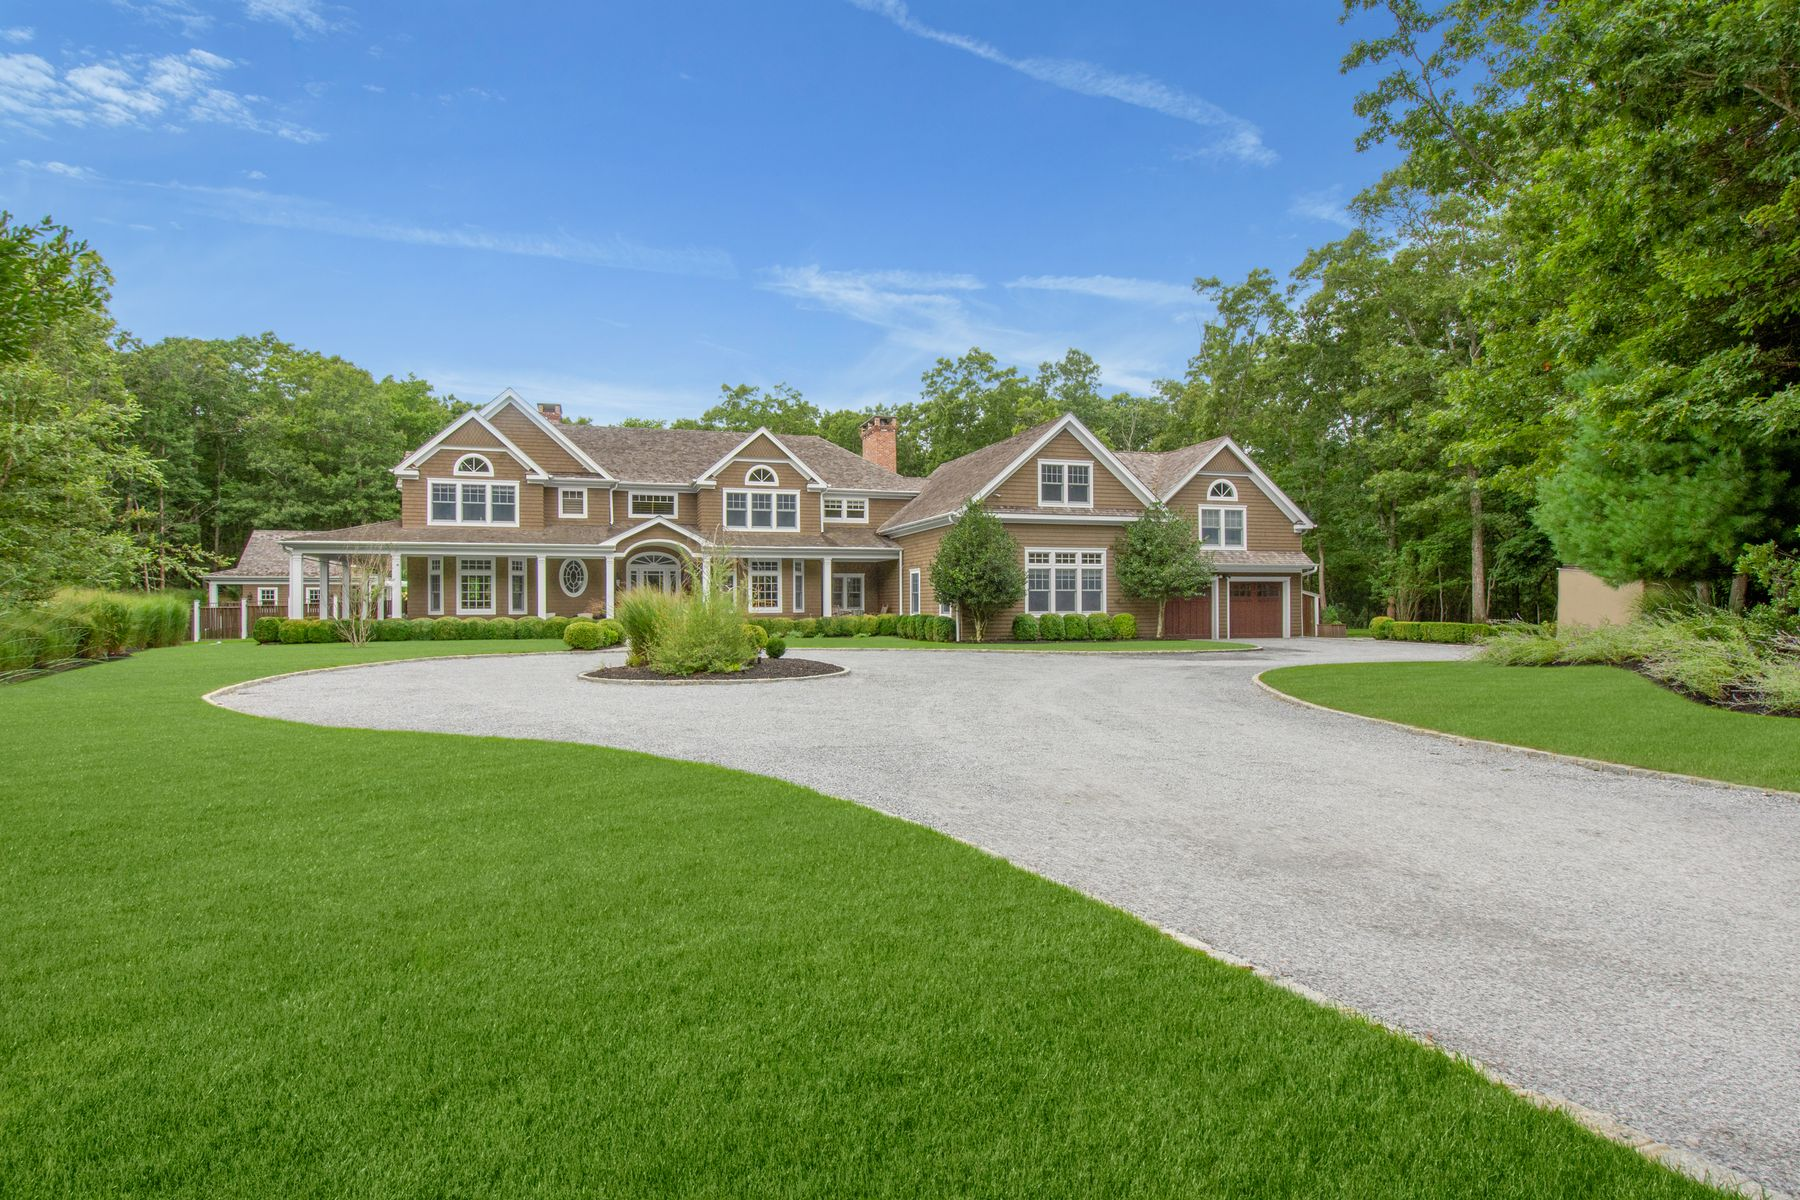 Single Family Homes for Sale at 5-Acres w Tennis Near Sag Harbor Village 129 Stoney Hill Road Sag Harbor, New York 11963 United States